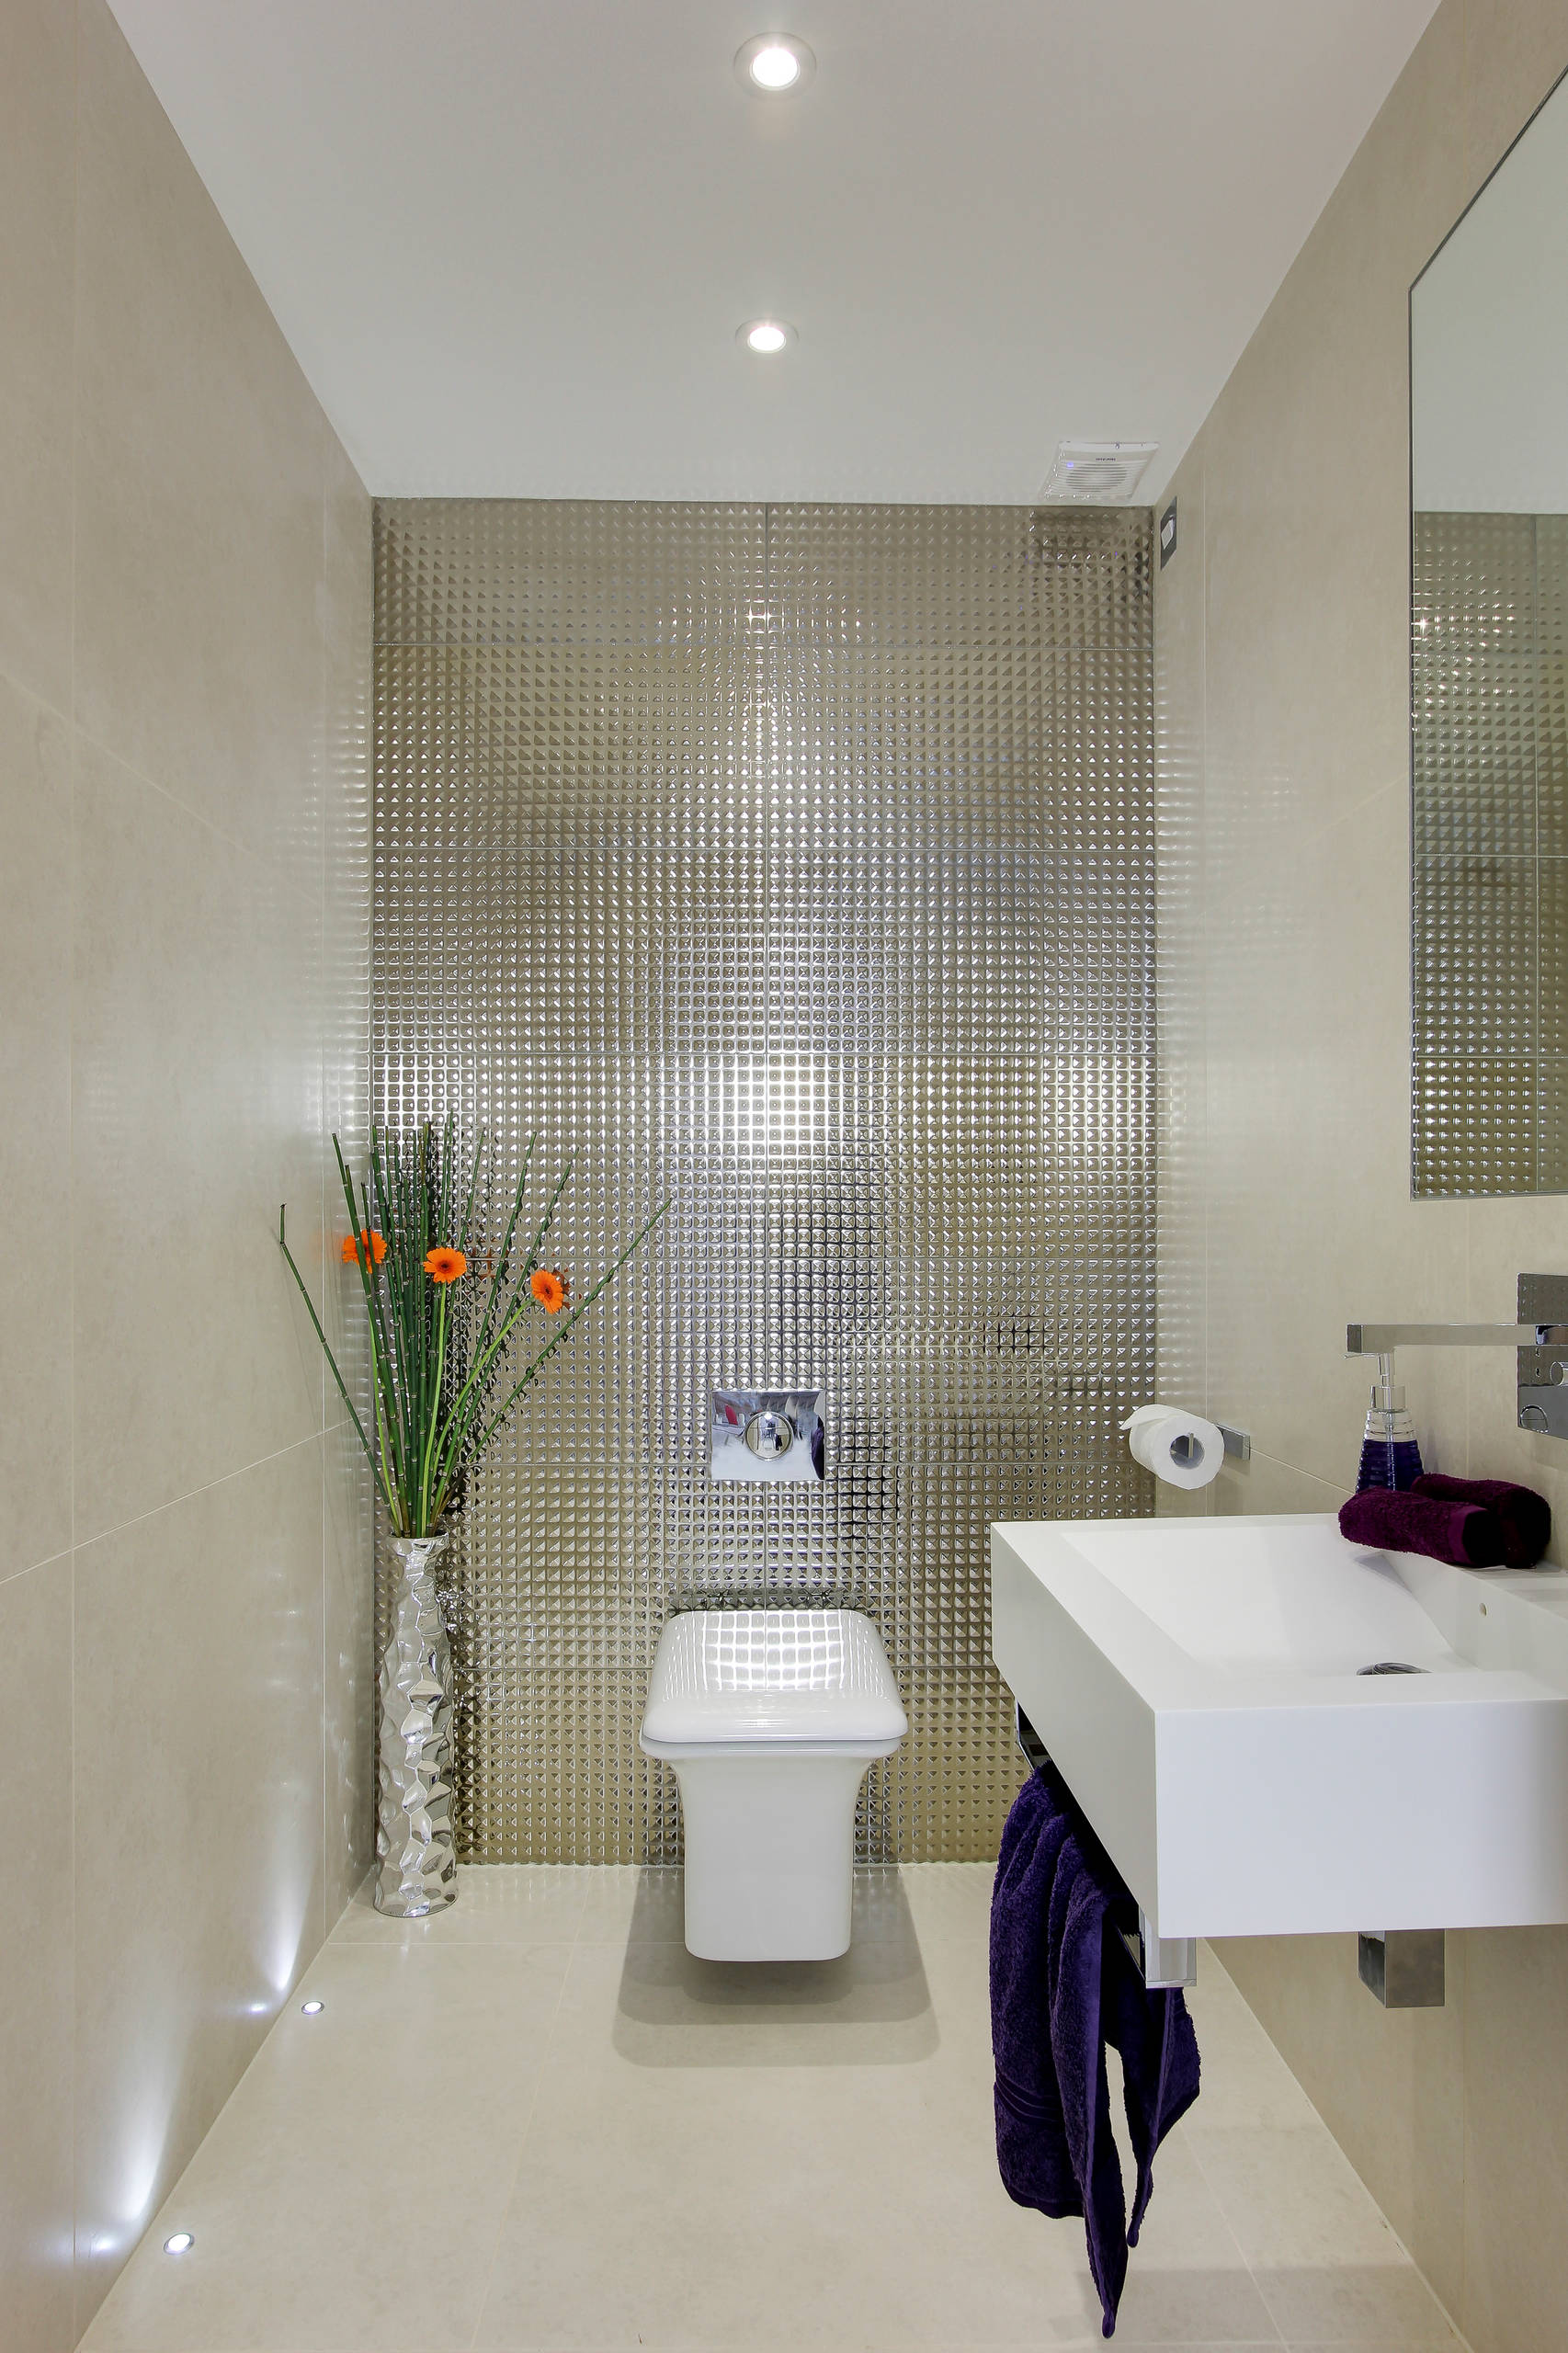 Gästetoilette Modern Bibliotheque Project - Modern Country Home, Herts - Contemporary - Cloakroom - Hertfordshire | Houzz Uk